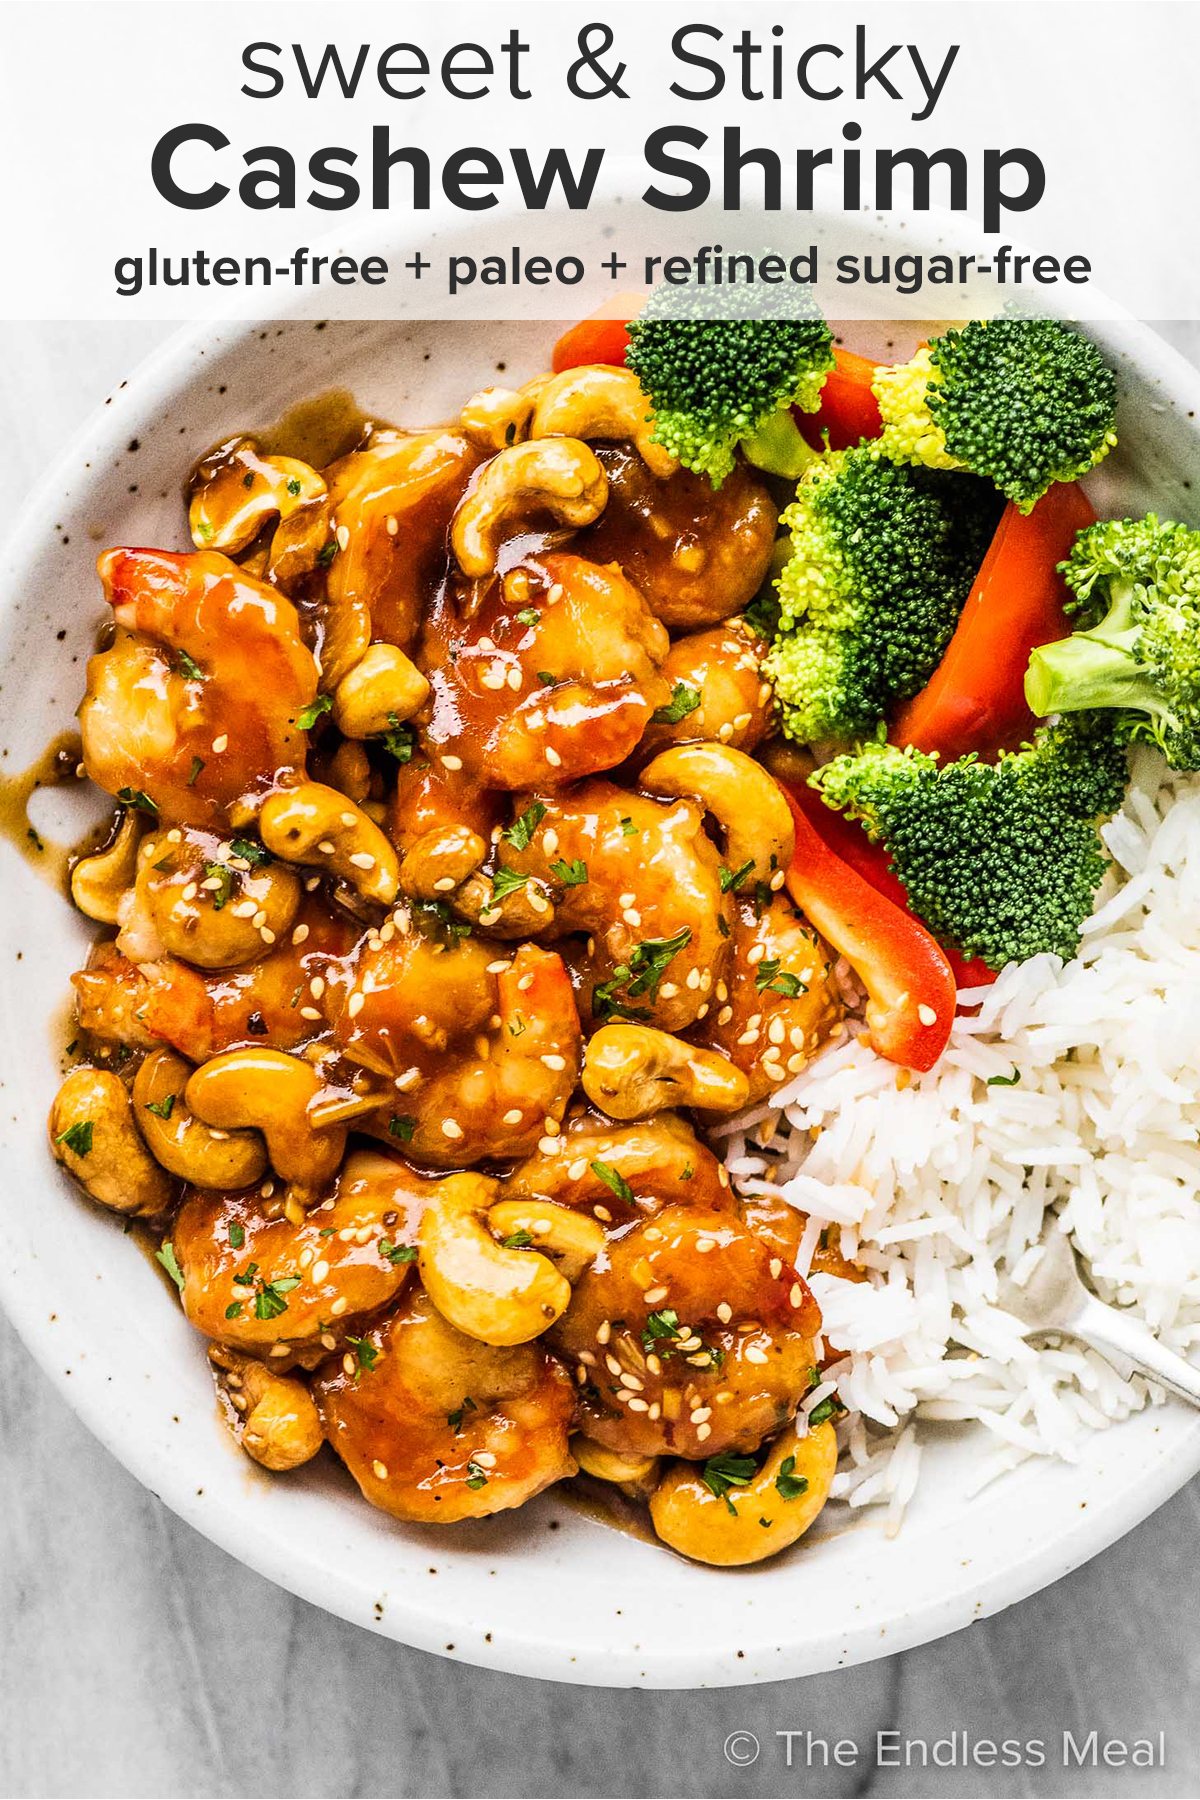 Cashew shrimp in a white bowl with broccoli and rice with the recipe title on top of the picture.